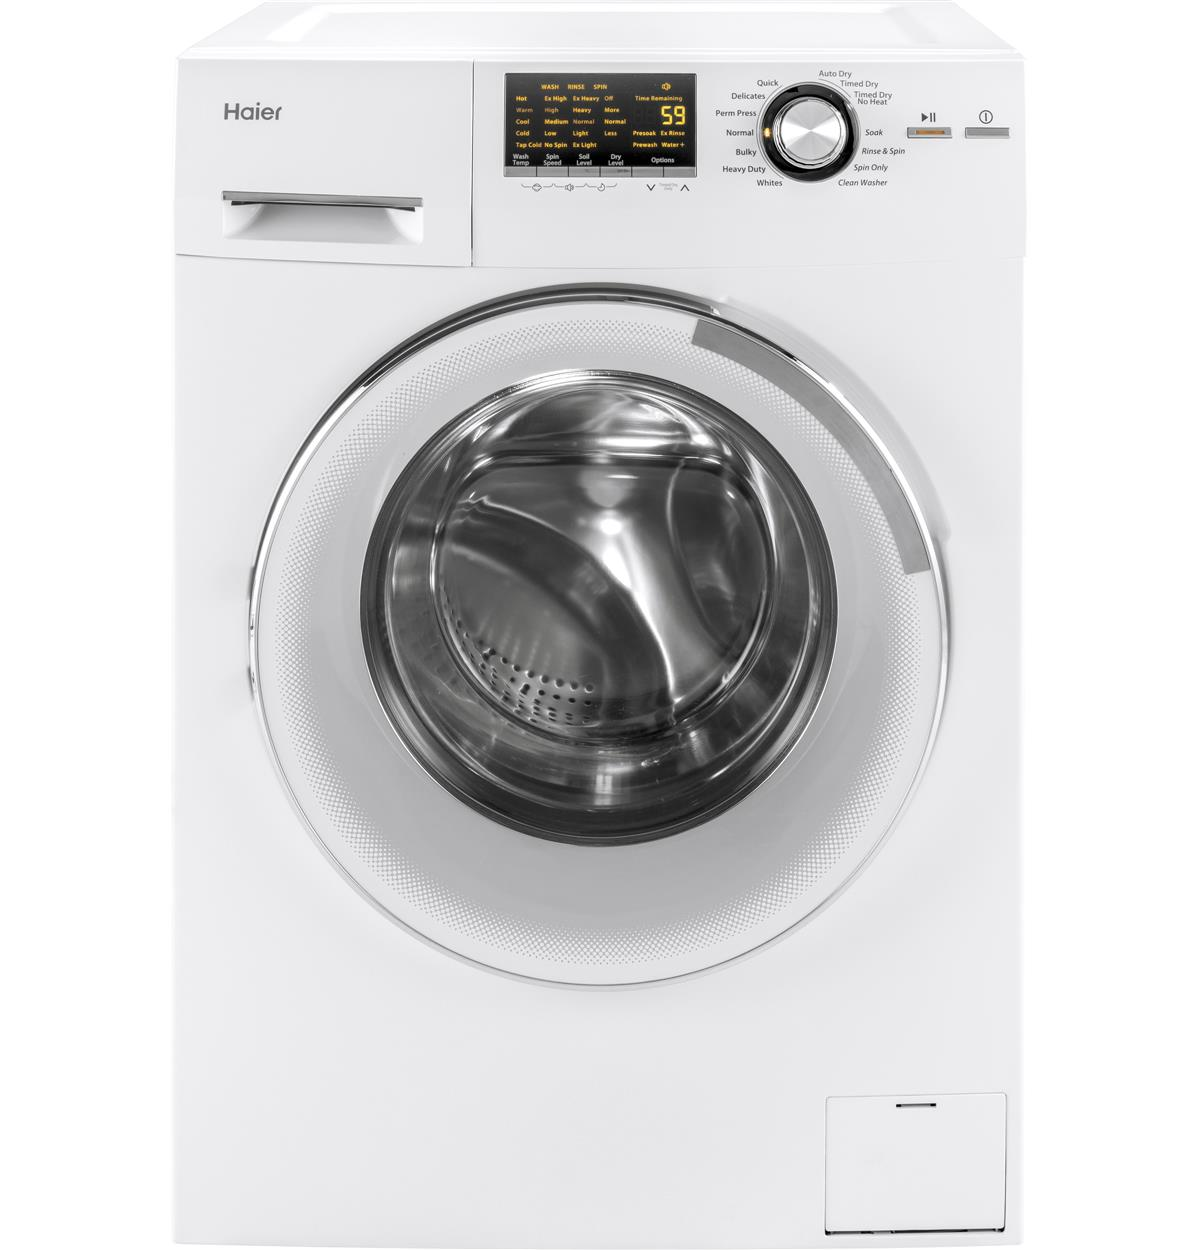 haier washer dryer combo hwd1600 manual